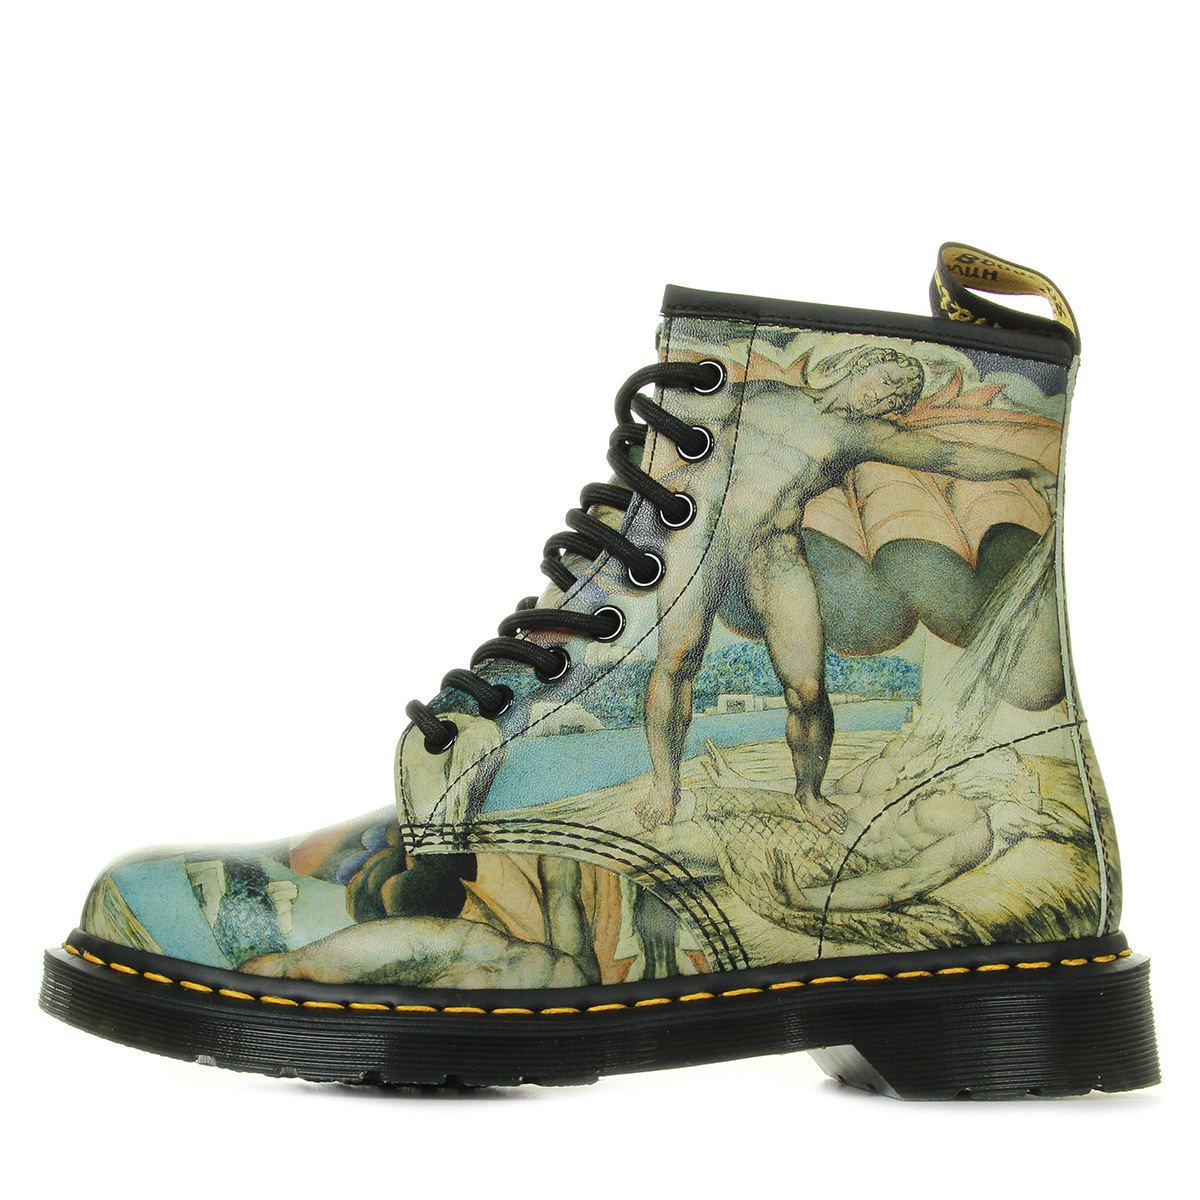 Dr. Martens 1460 Multi William Blake 22873102, Boots